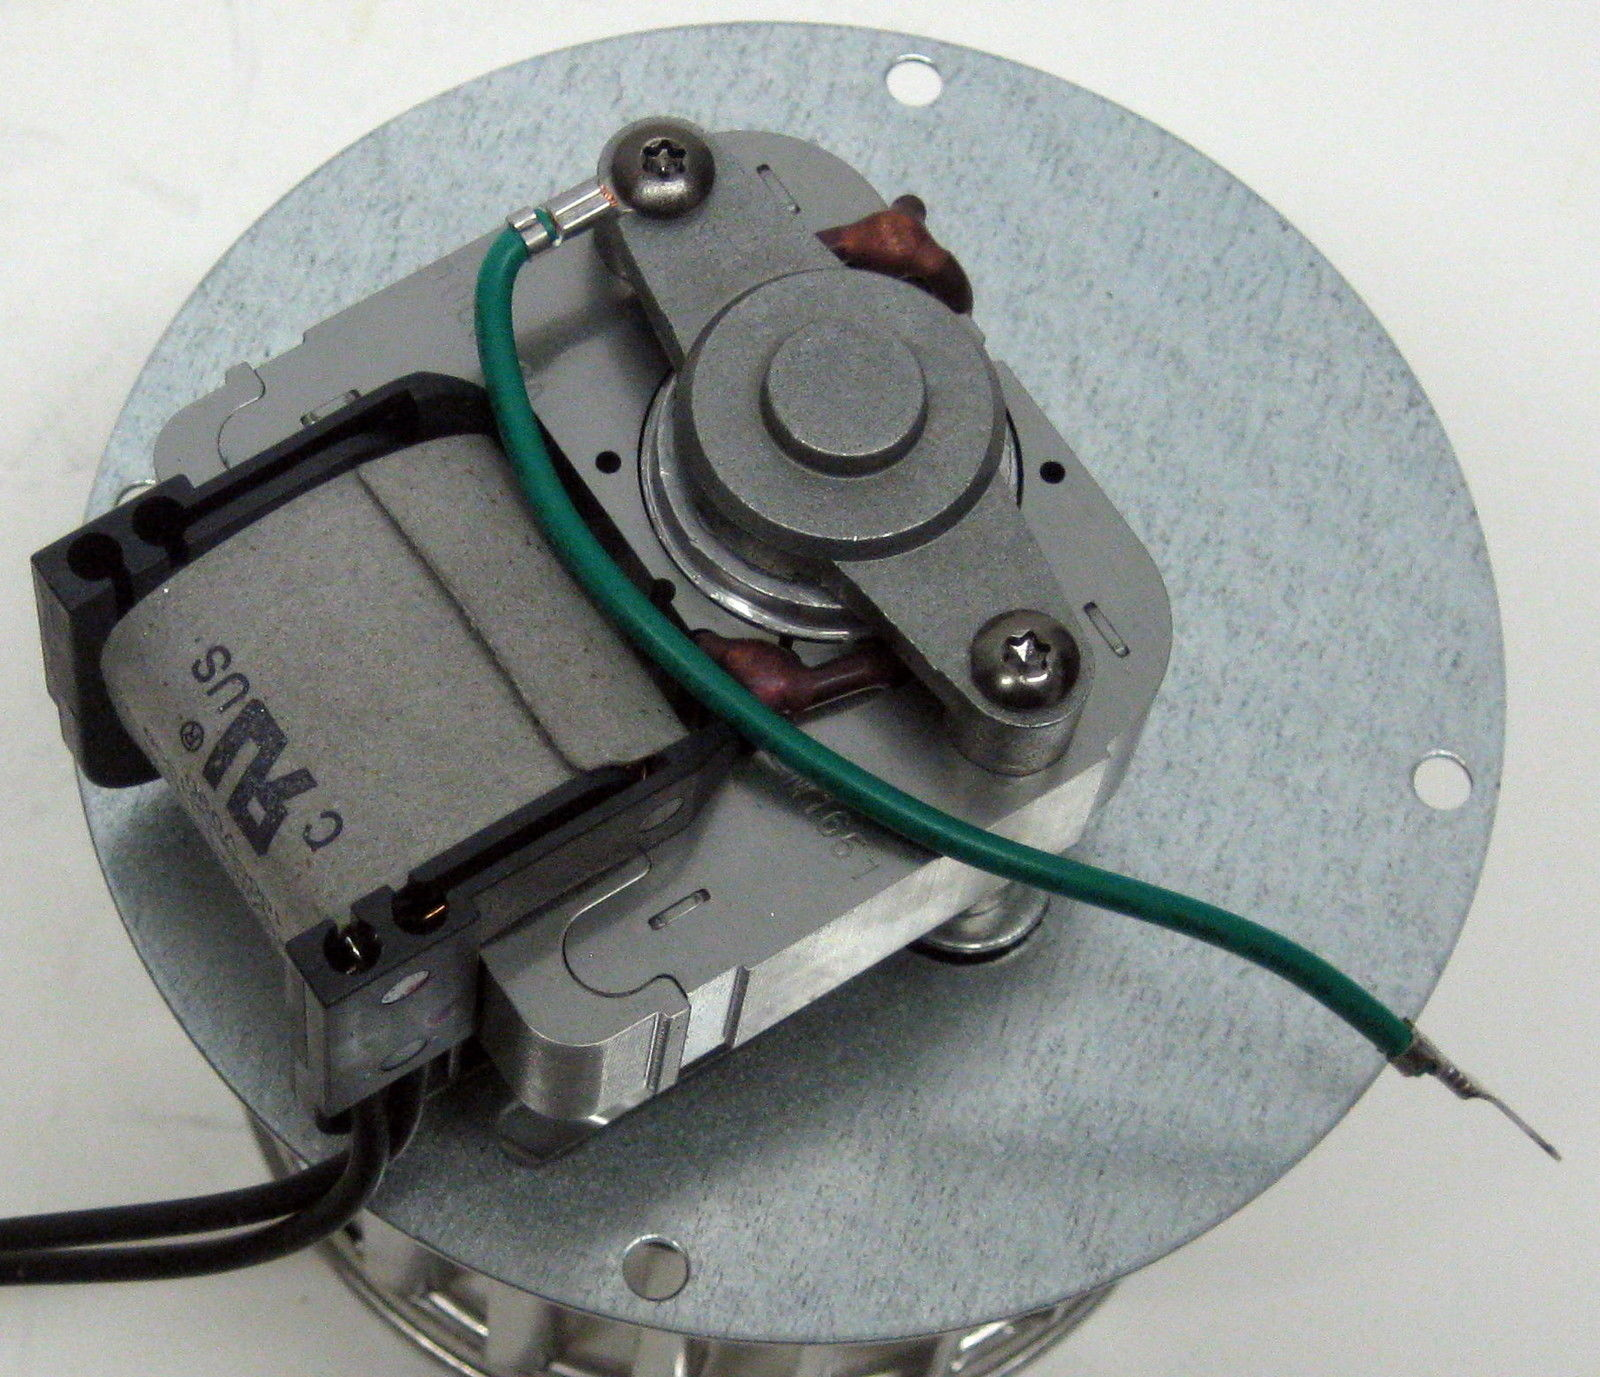 69357000 Broan Nutone Bathroom Exhaust Blower Motor Vent Fan Wheel For 9605  C 57768   Walmart.com